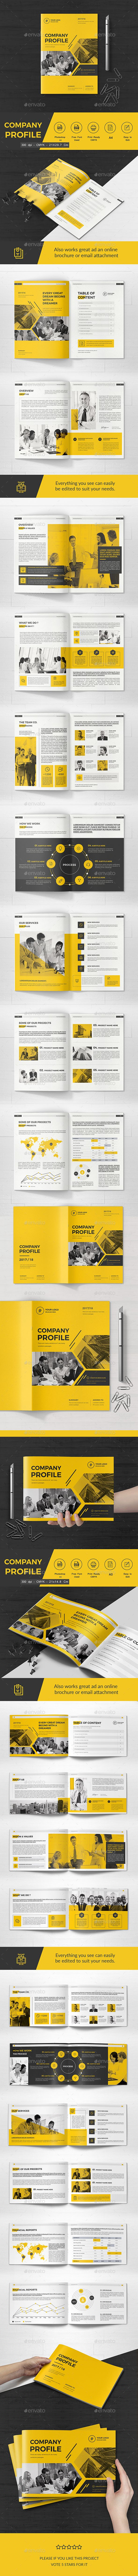 Pin by Premium Design on Brochures Template Pinterest